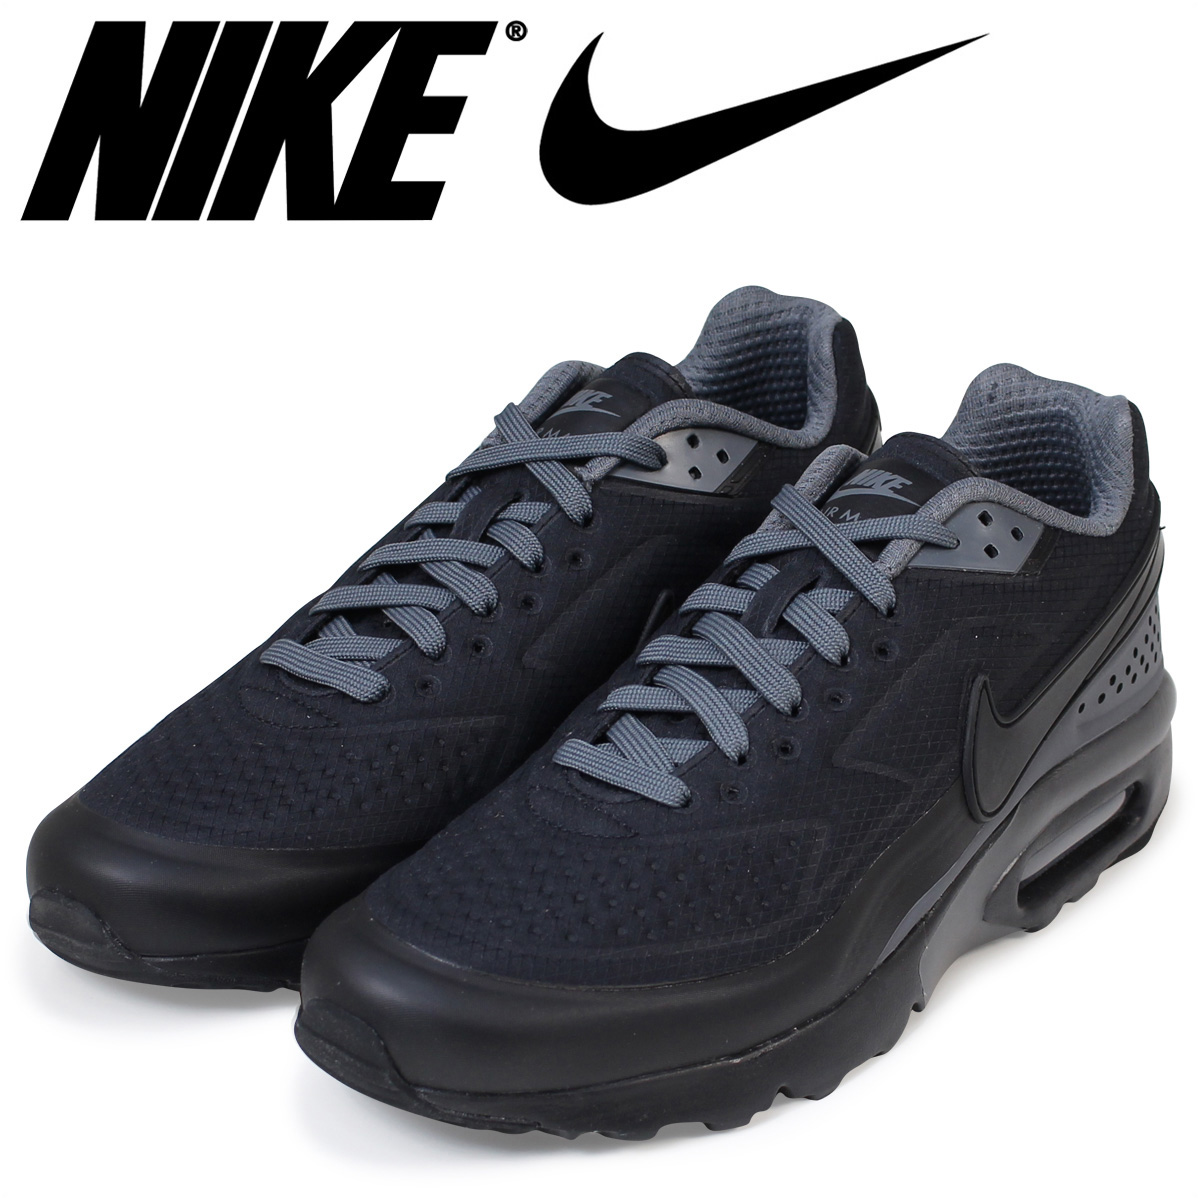 NIKE Kie Ney AMAX men sneakers AIR MAX BW ULTRA SE 844,967 002 shoes black black